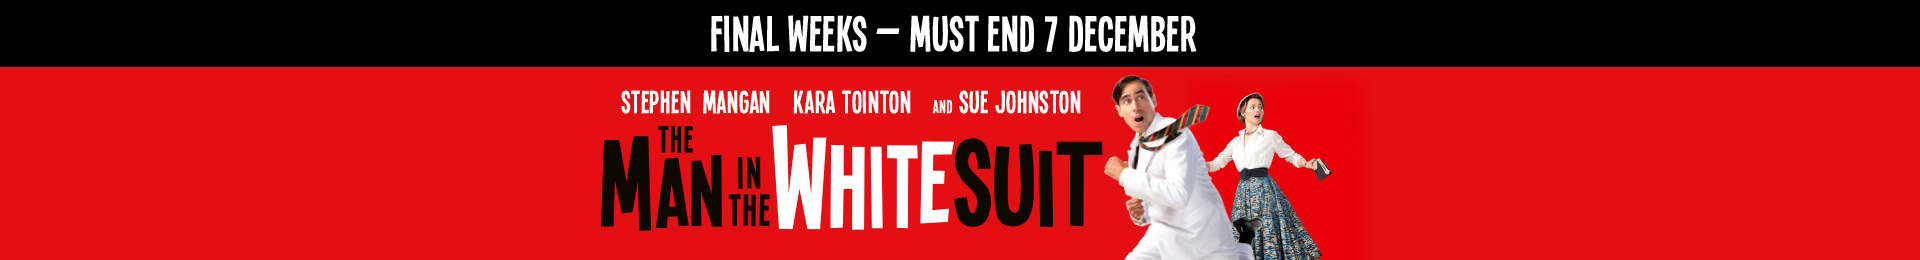 The Man in the White Suit banner image